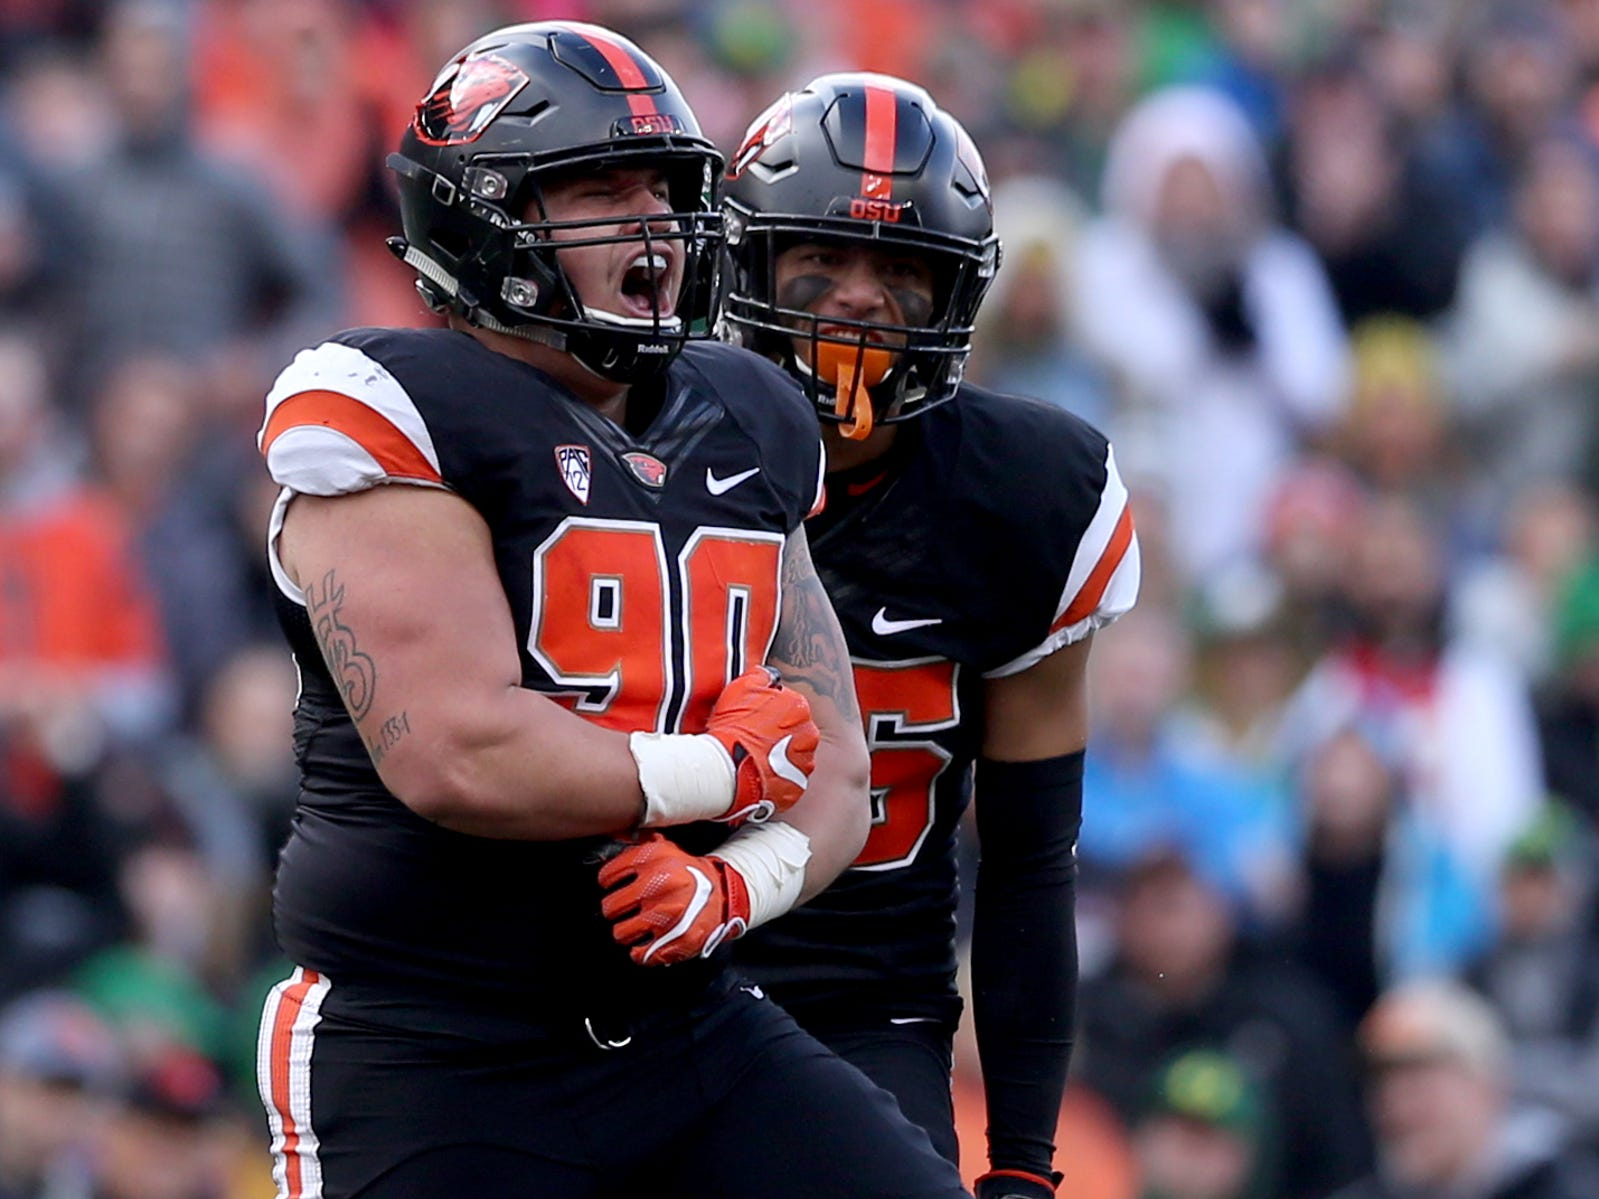 Oregon State's Isaac Hodgins (90) and Jayden Grant (26) celebrate a sack in the Oregon vs. Oregon State Civil war football game at Oregon State University in Corvallis on Friday, Nov. 23, 2018.